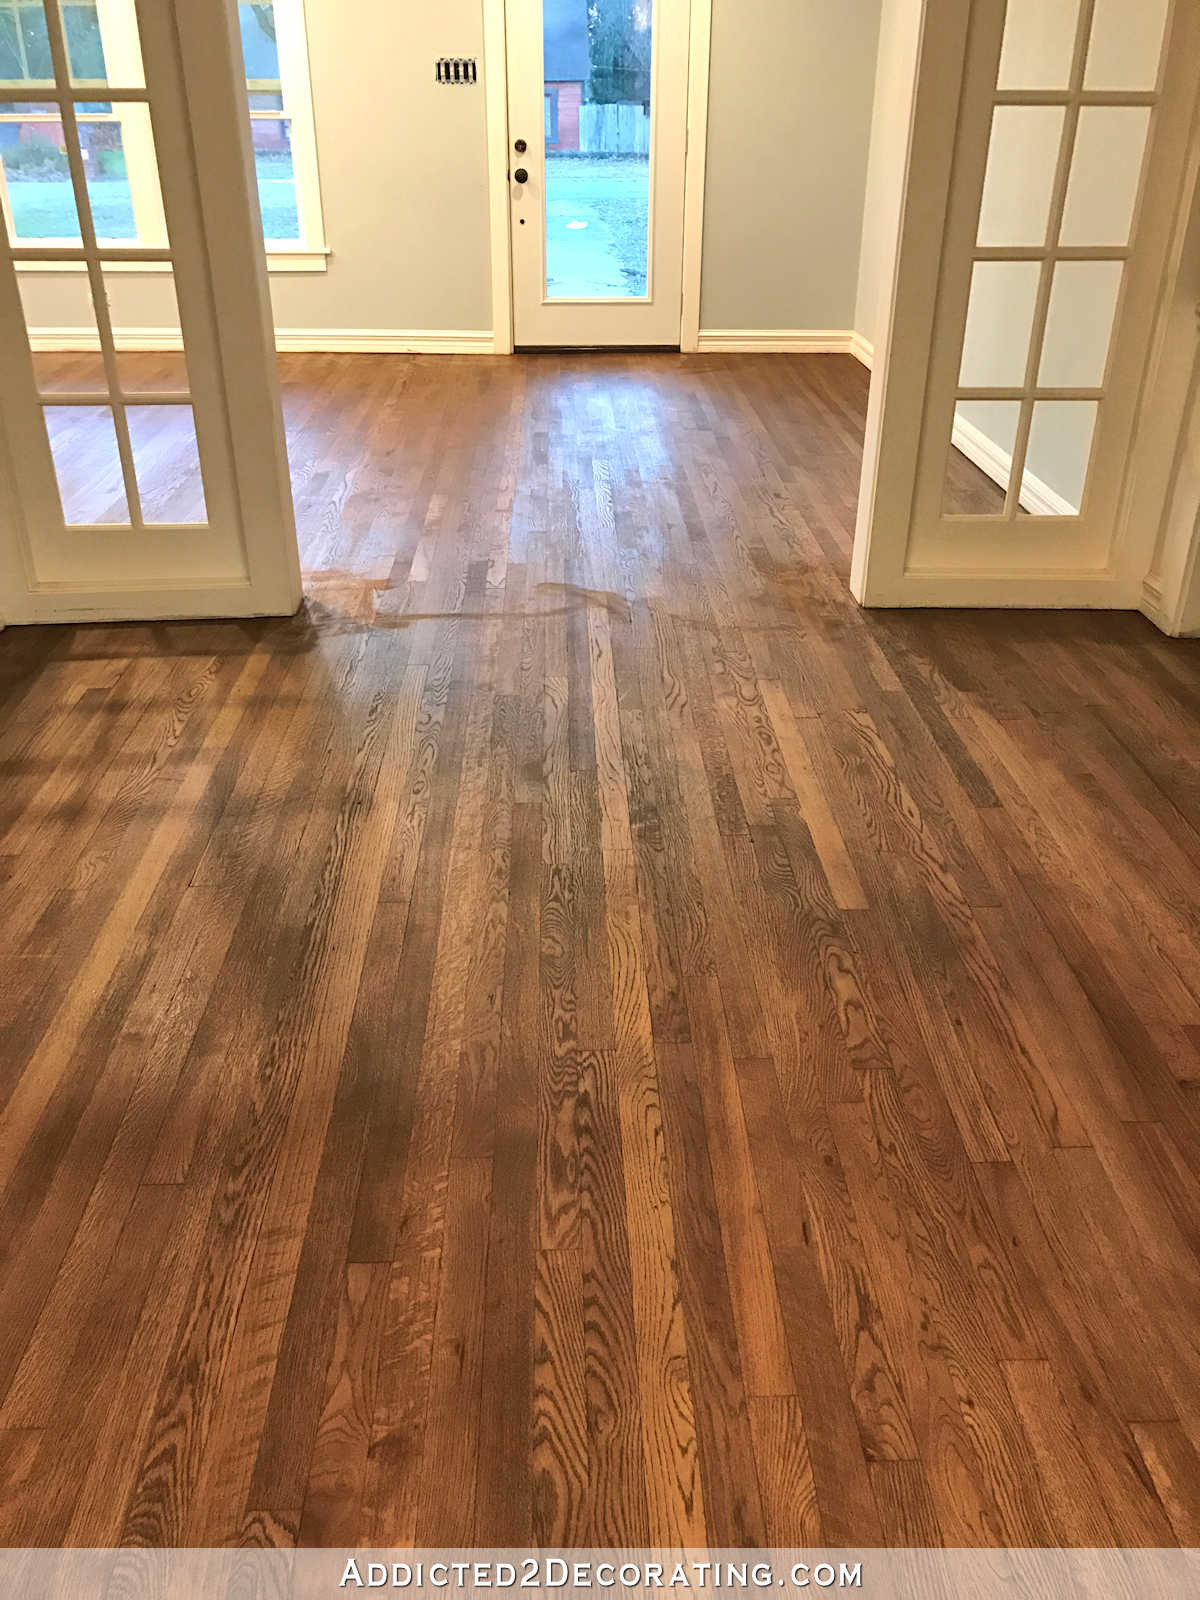 Staining Hardwood Floors by Hand Of Adventures In Staining My Red Oak Hardwood Floors Products Process Inside Staining Red Oak Hardwood Floors 9 Stain On Entryway and Music Room Floors